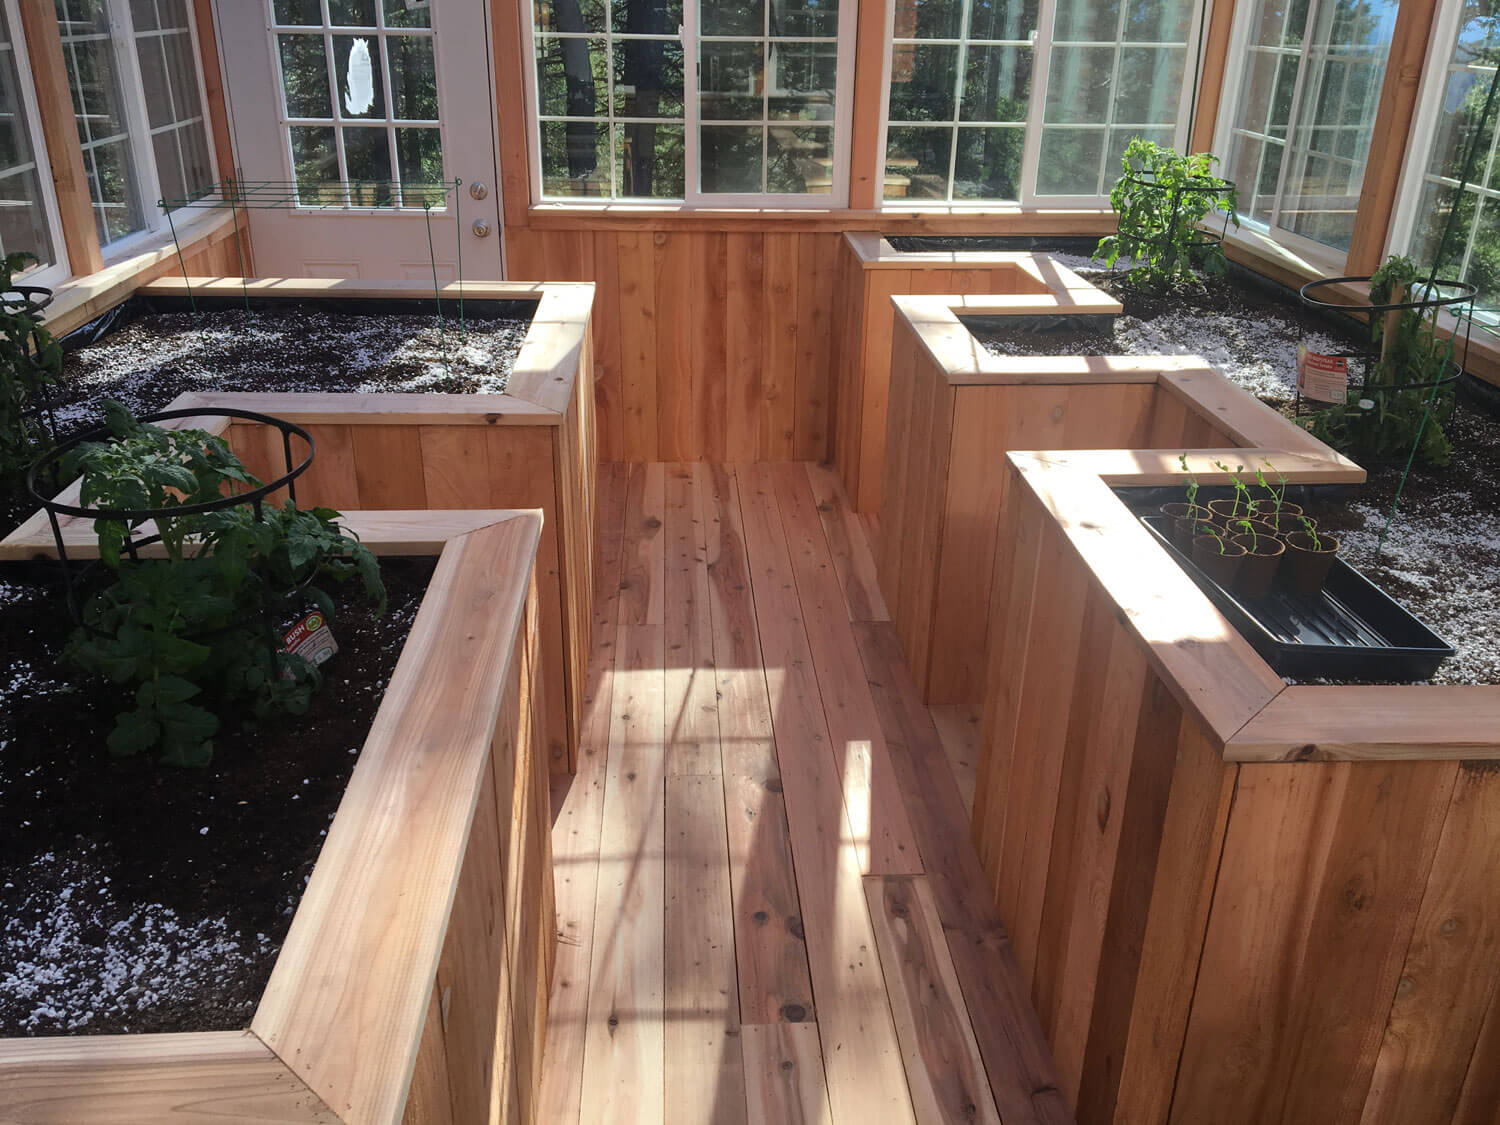 greenhouse-with-cedar-floor-and-raised-beds